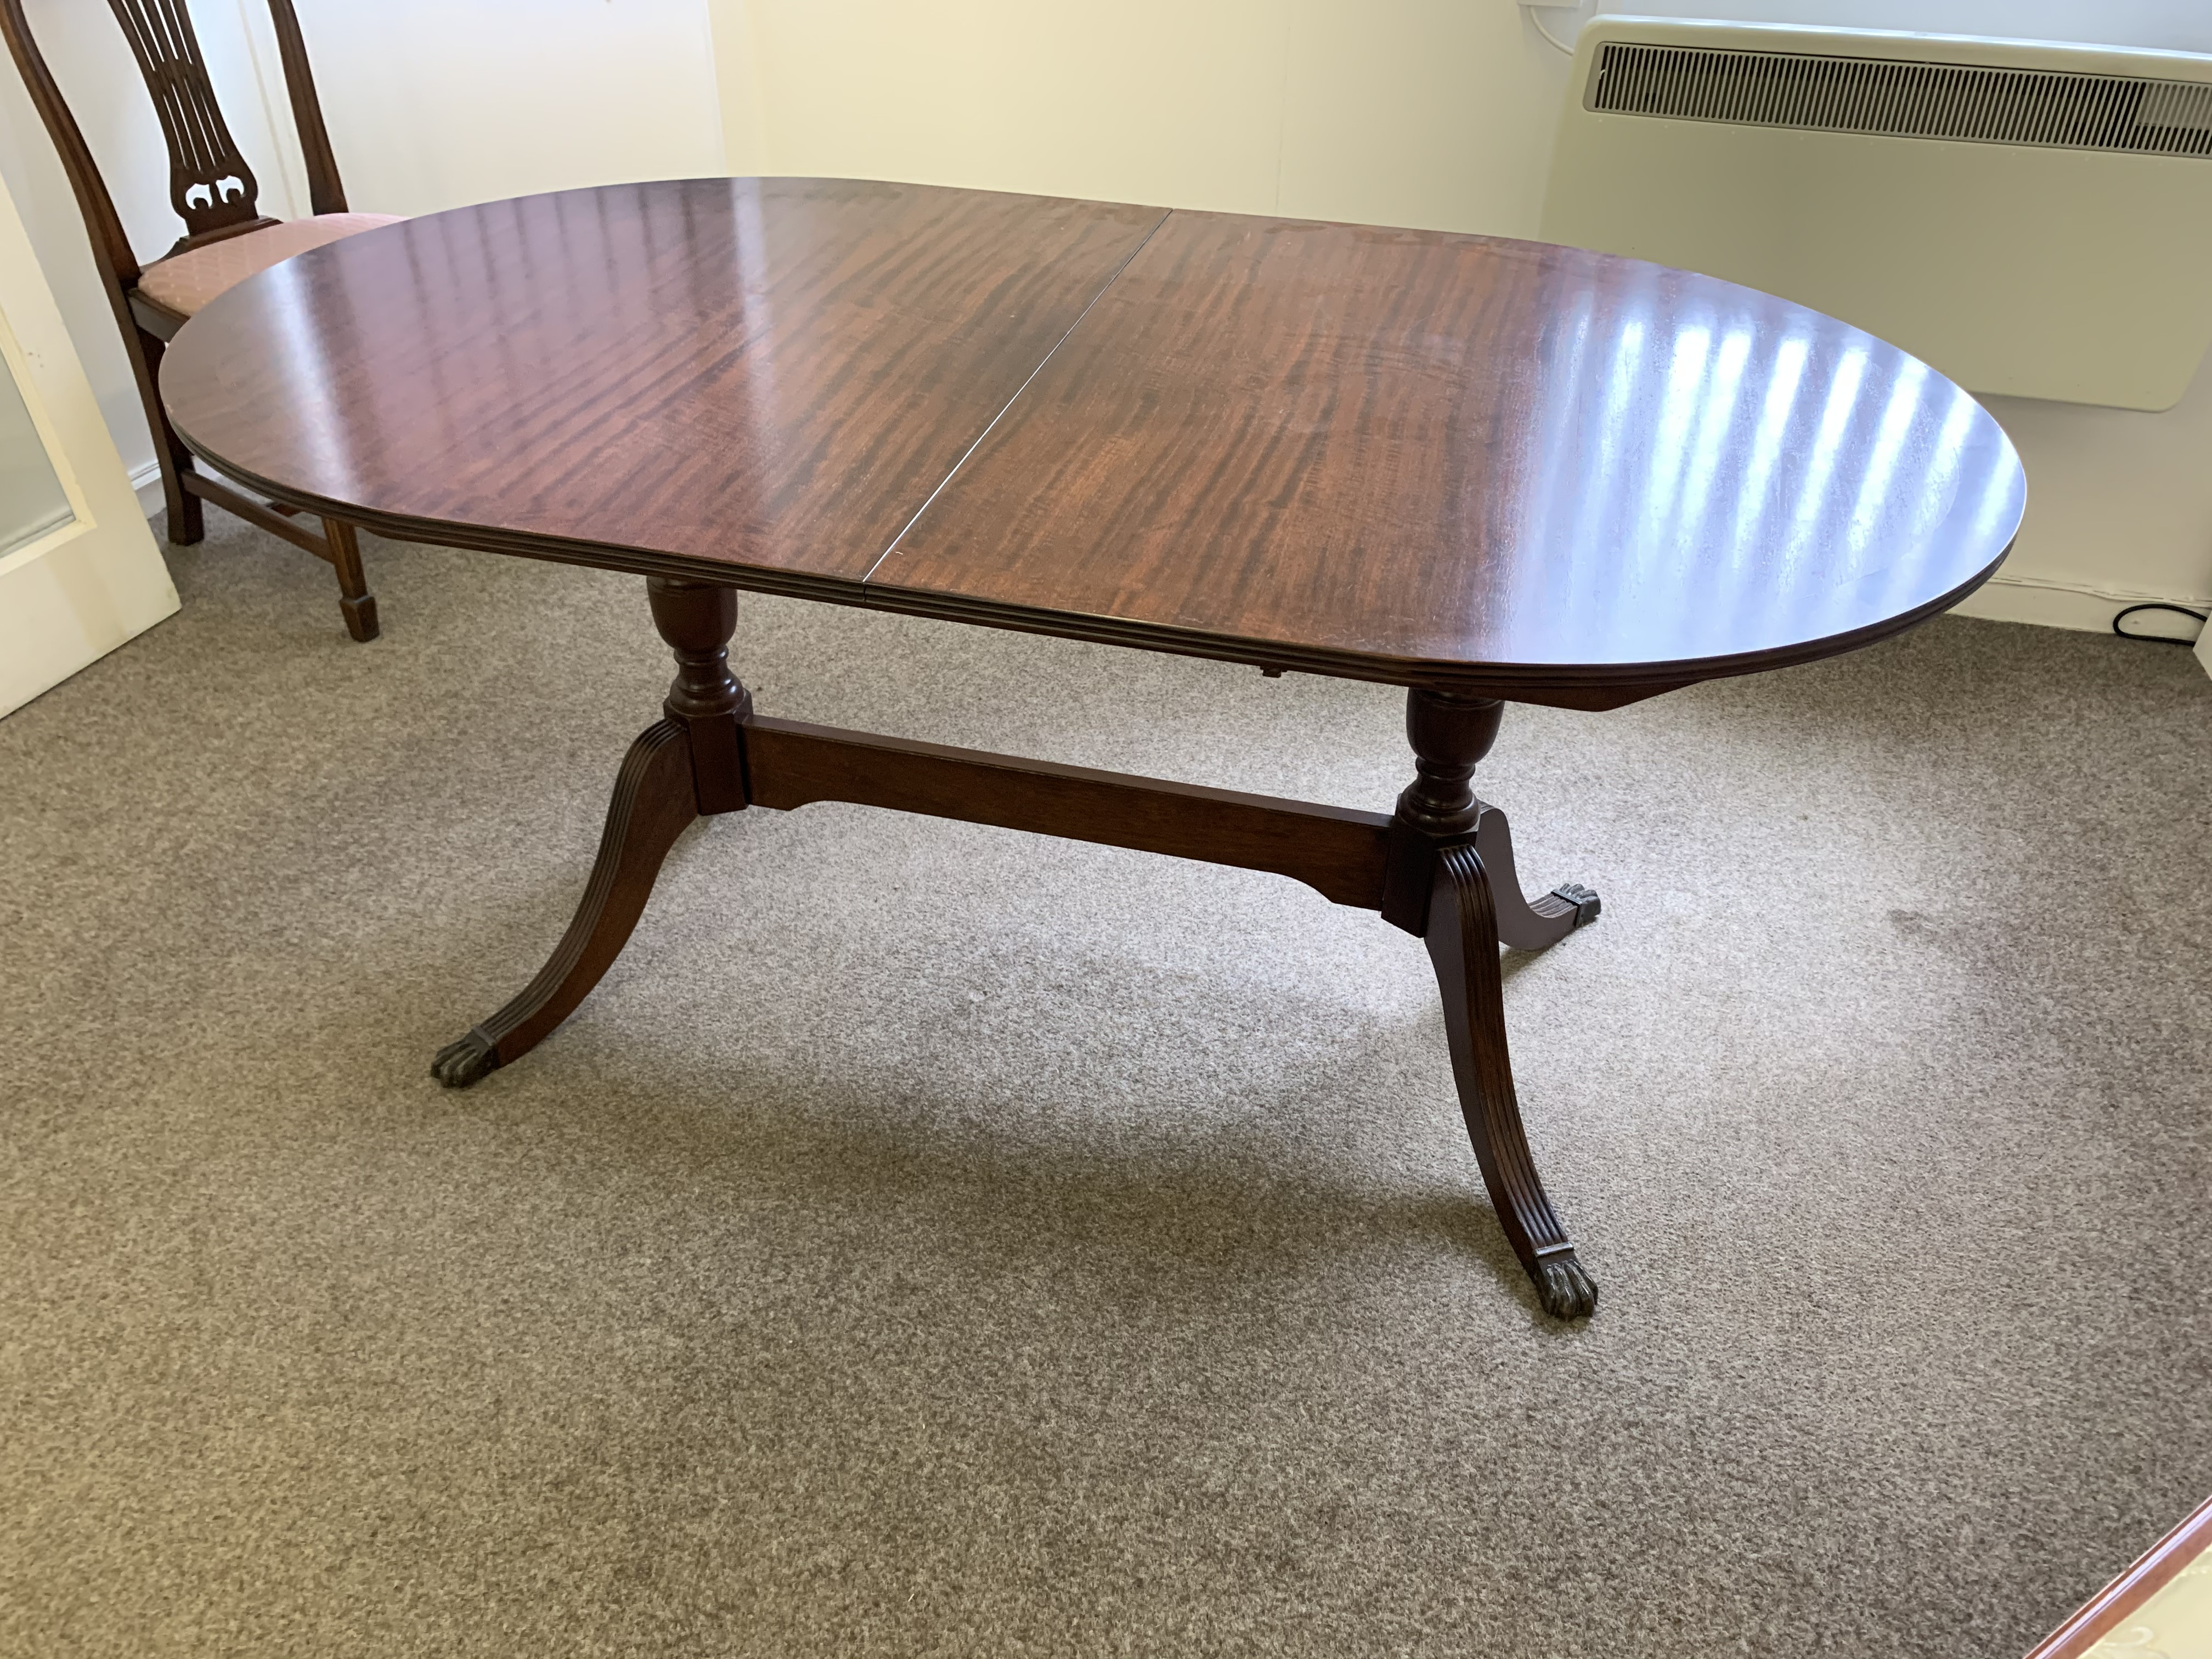 Lot 63 - Oval reproduction Dining Table.